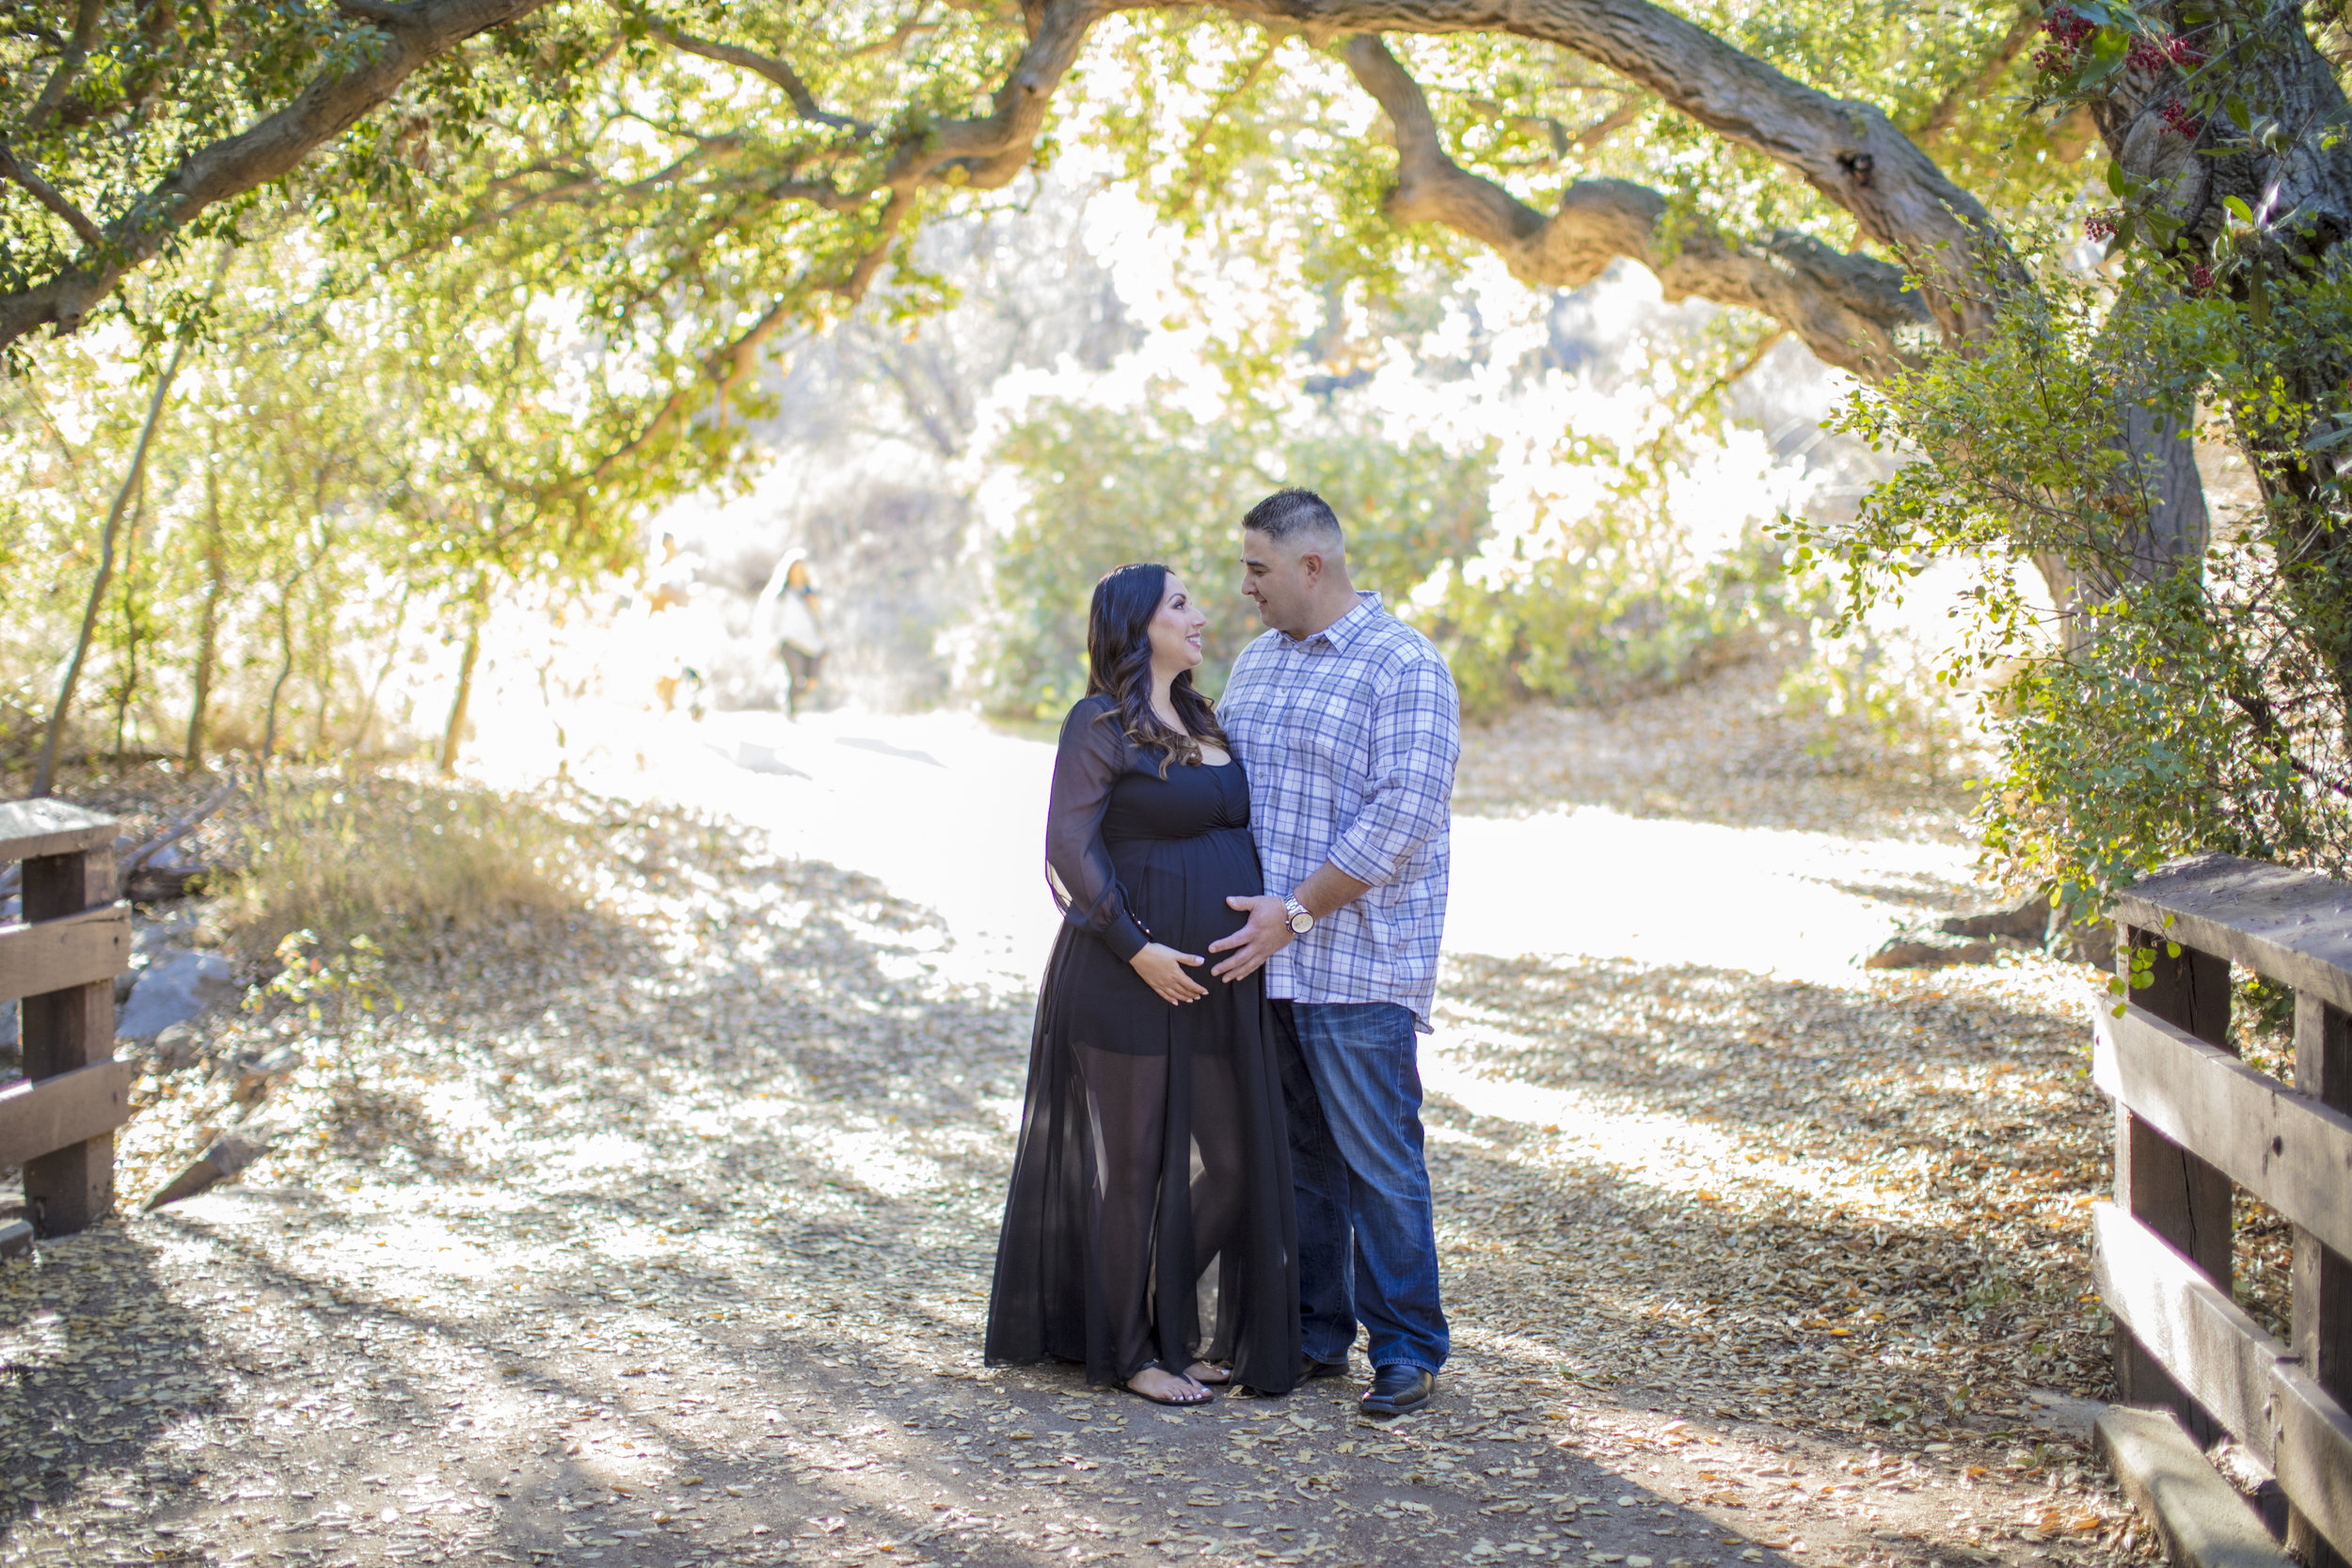 Couples | Maternity Photography - Photography and Video Services By Bryant Nix